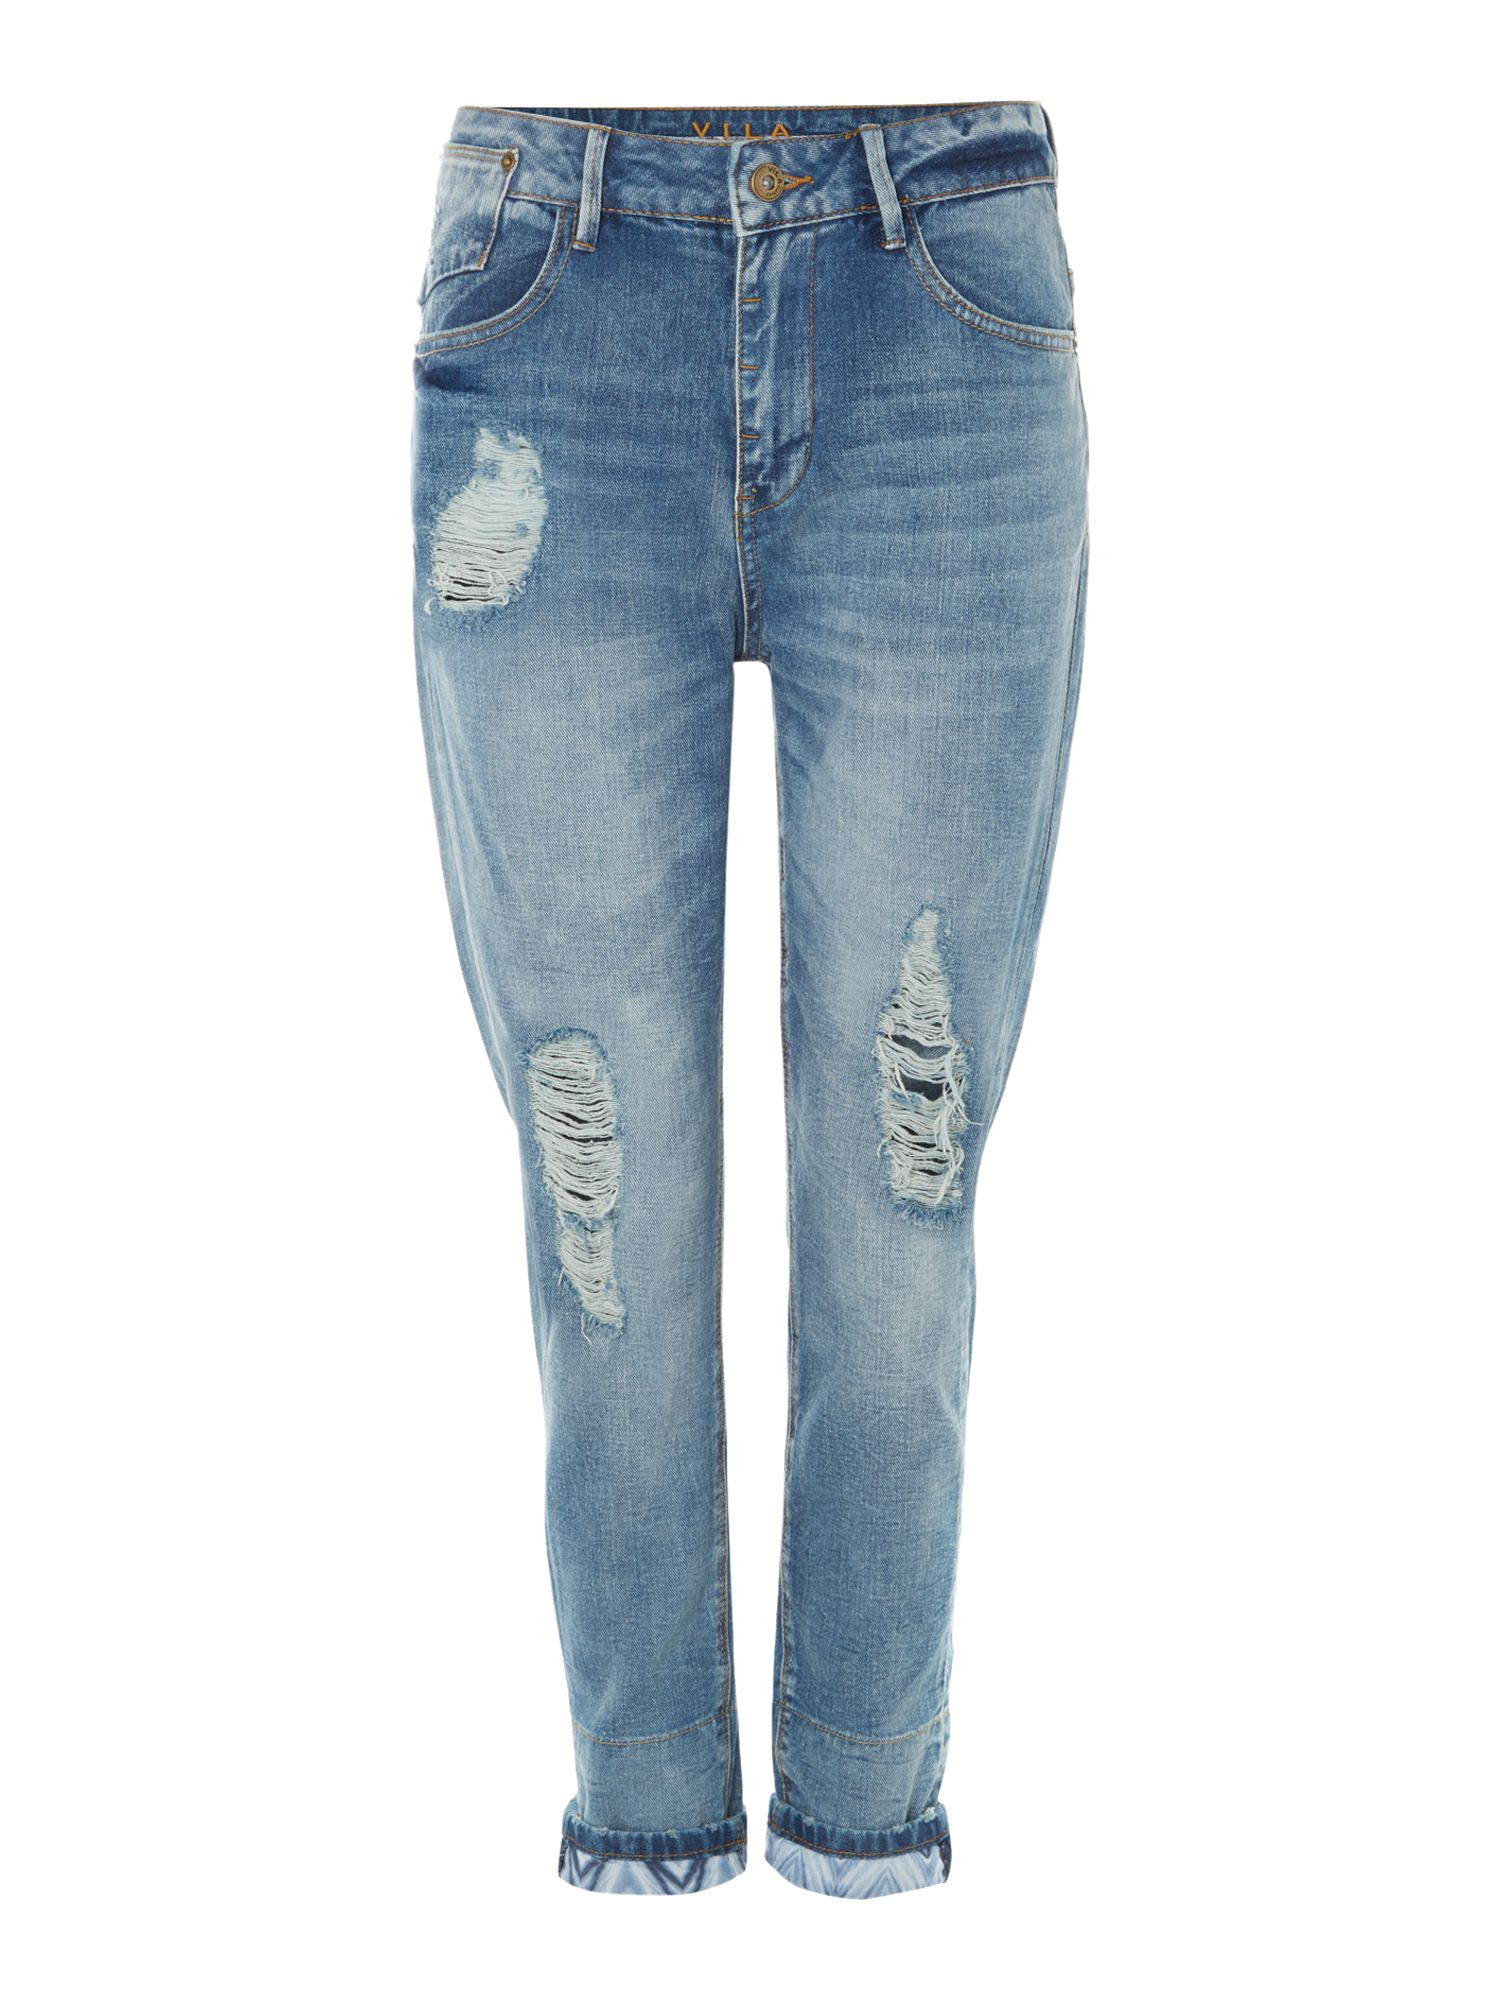 Boyfriend distressed jeans